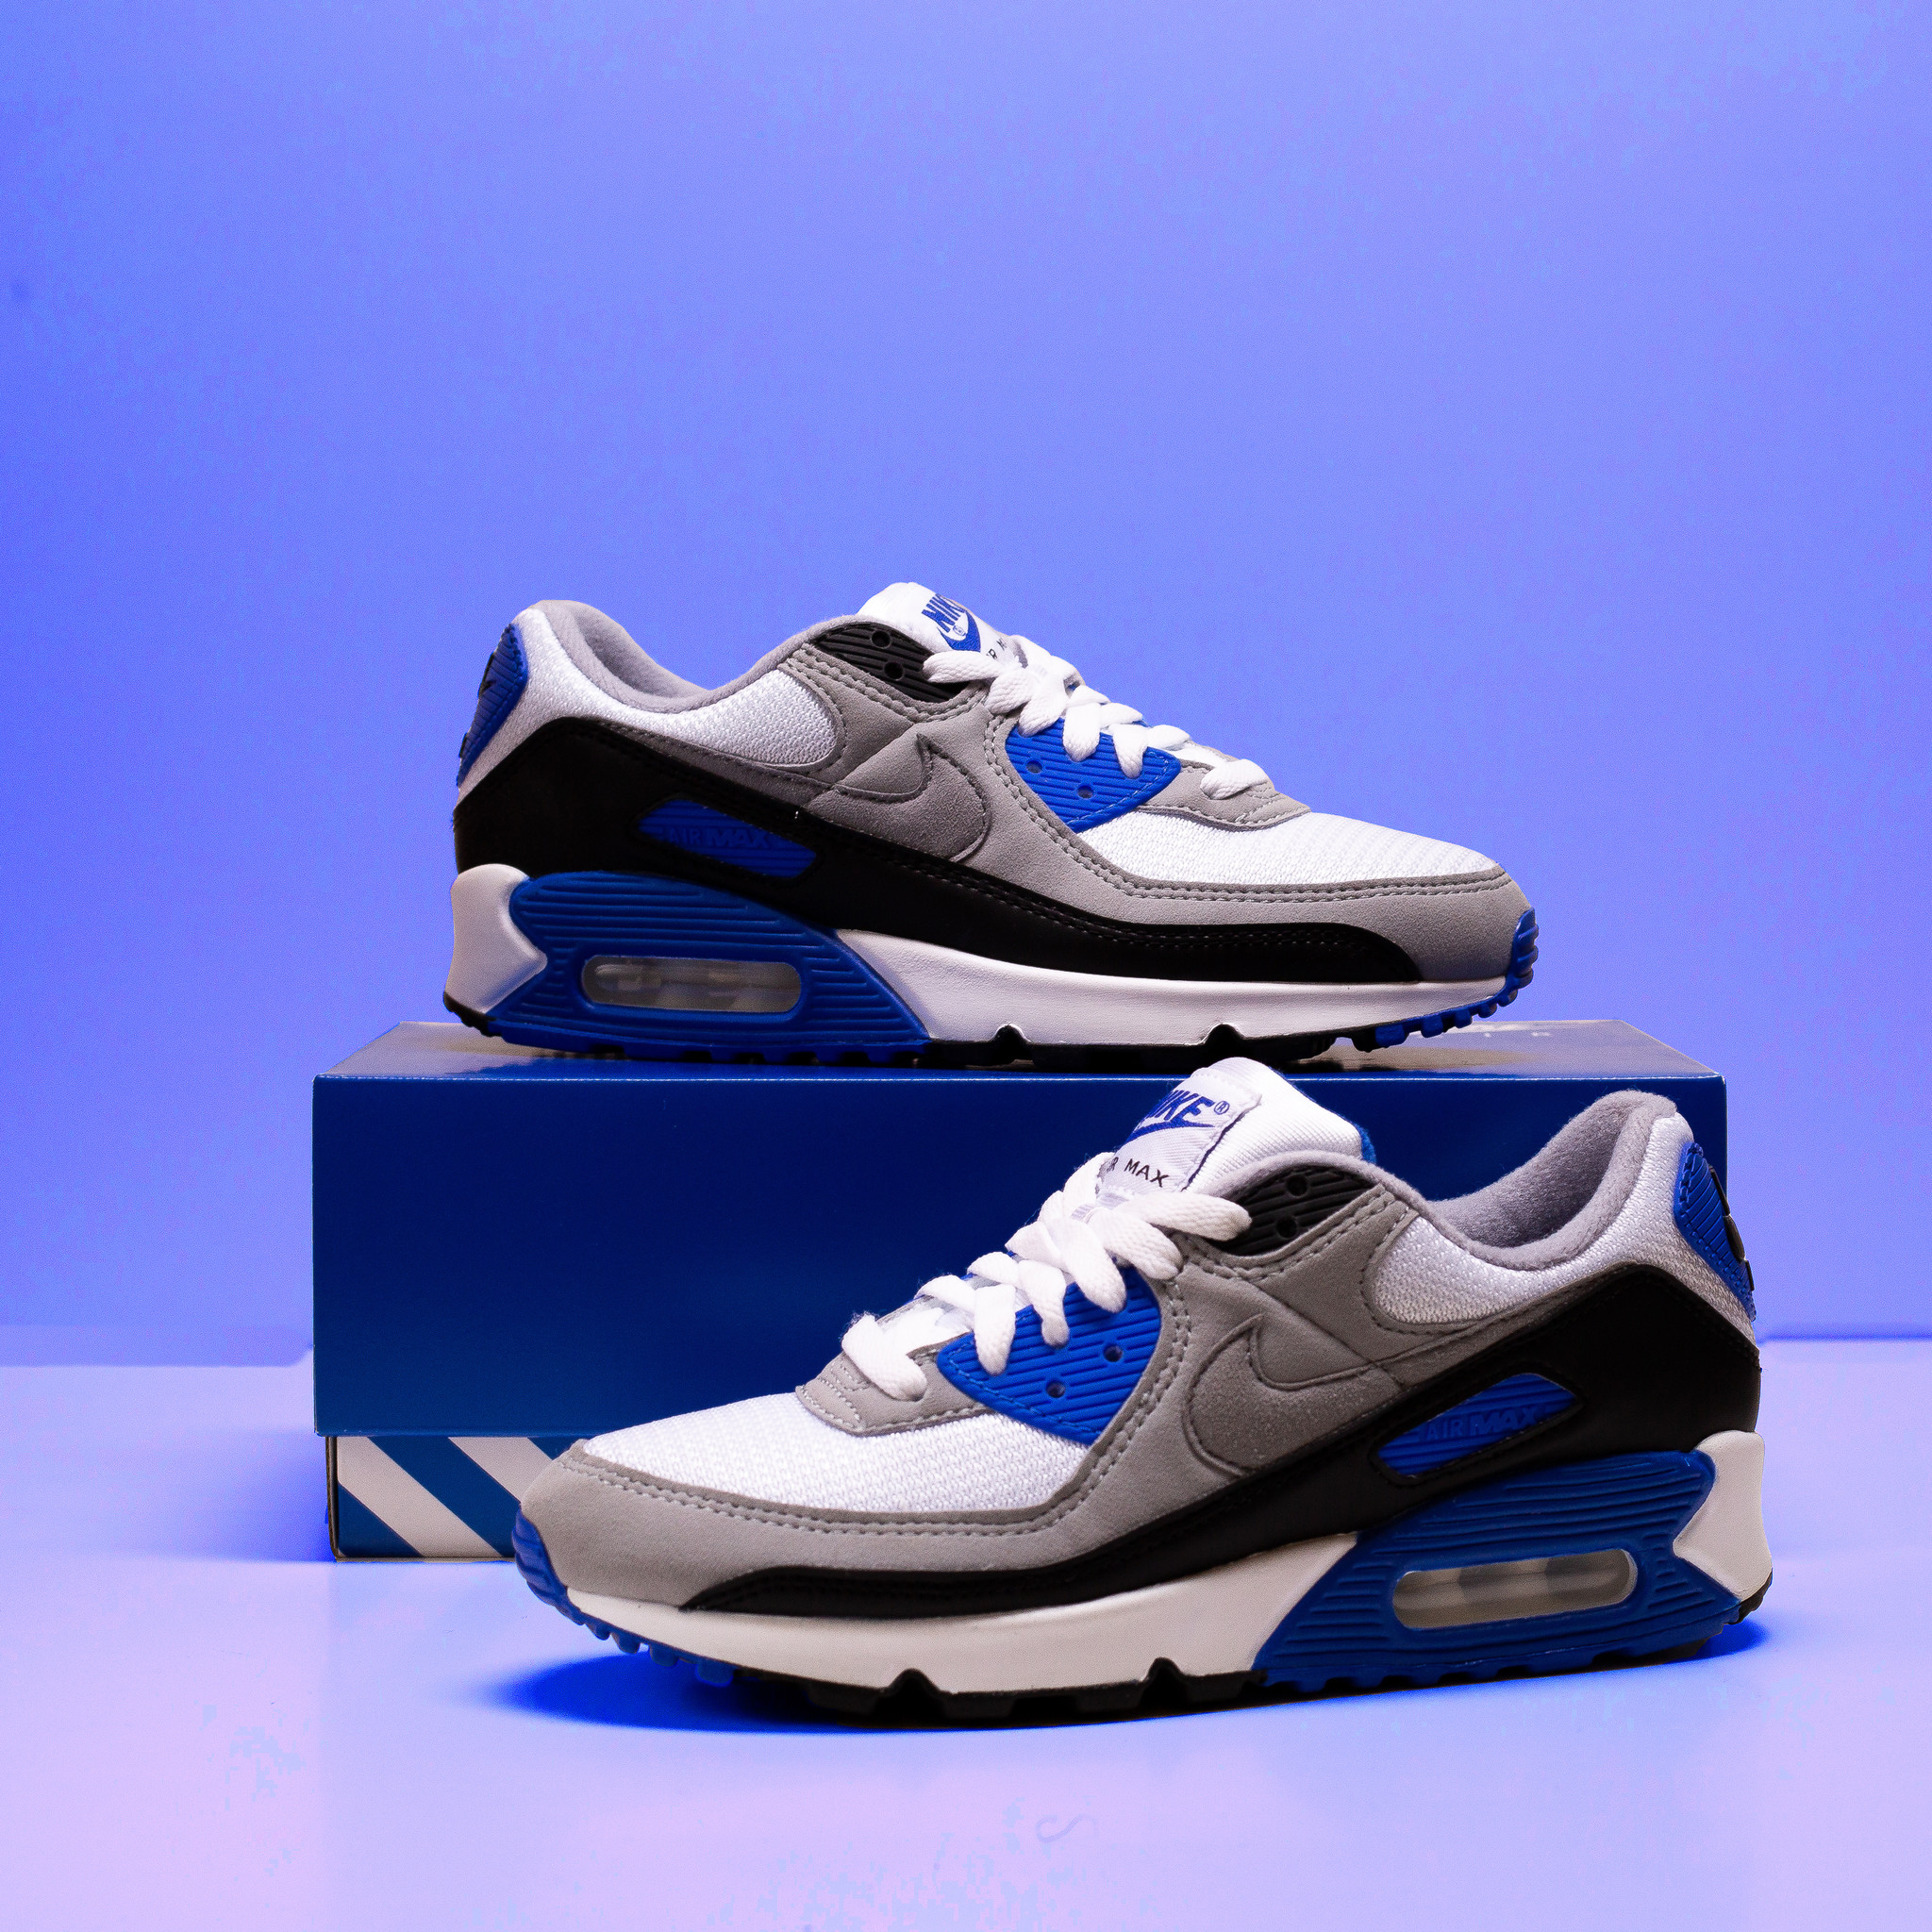 Nike Air Max 90 white/blue